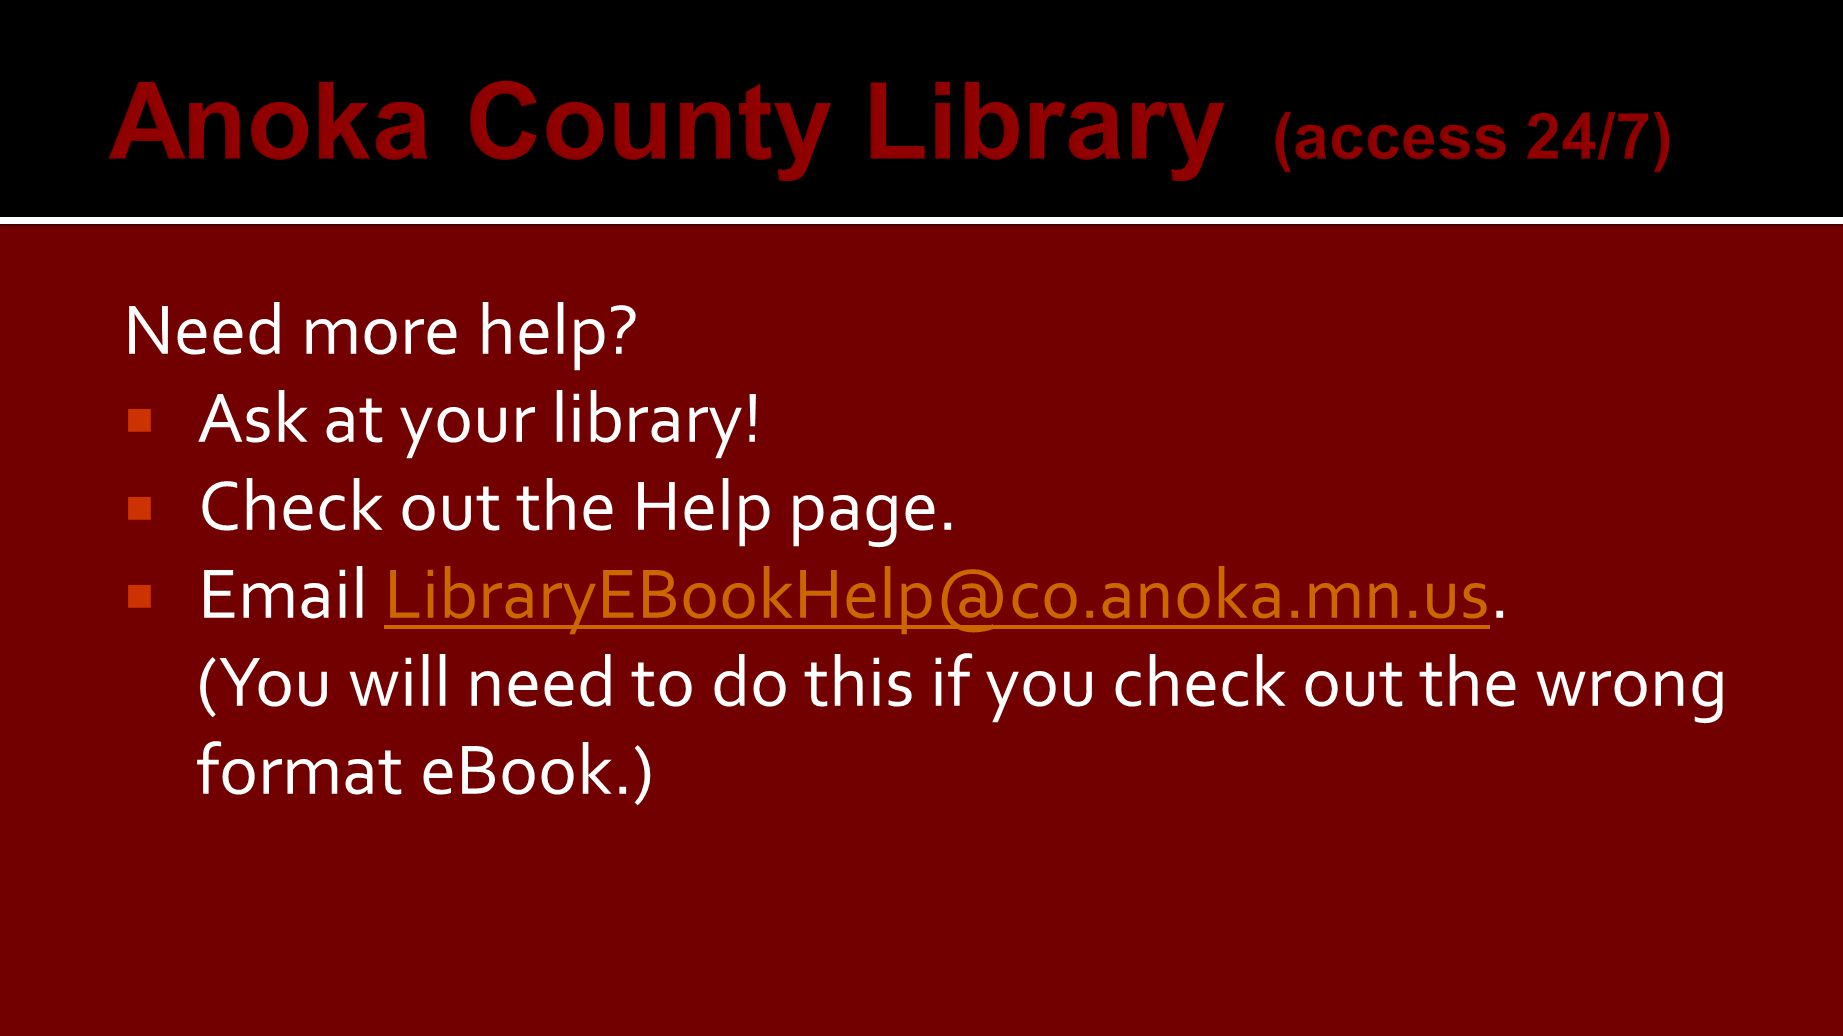 Need more help.  Ask at your library.  Check out the Help page.